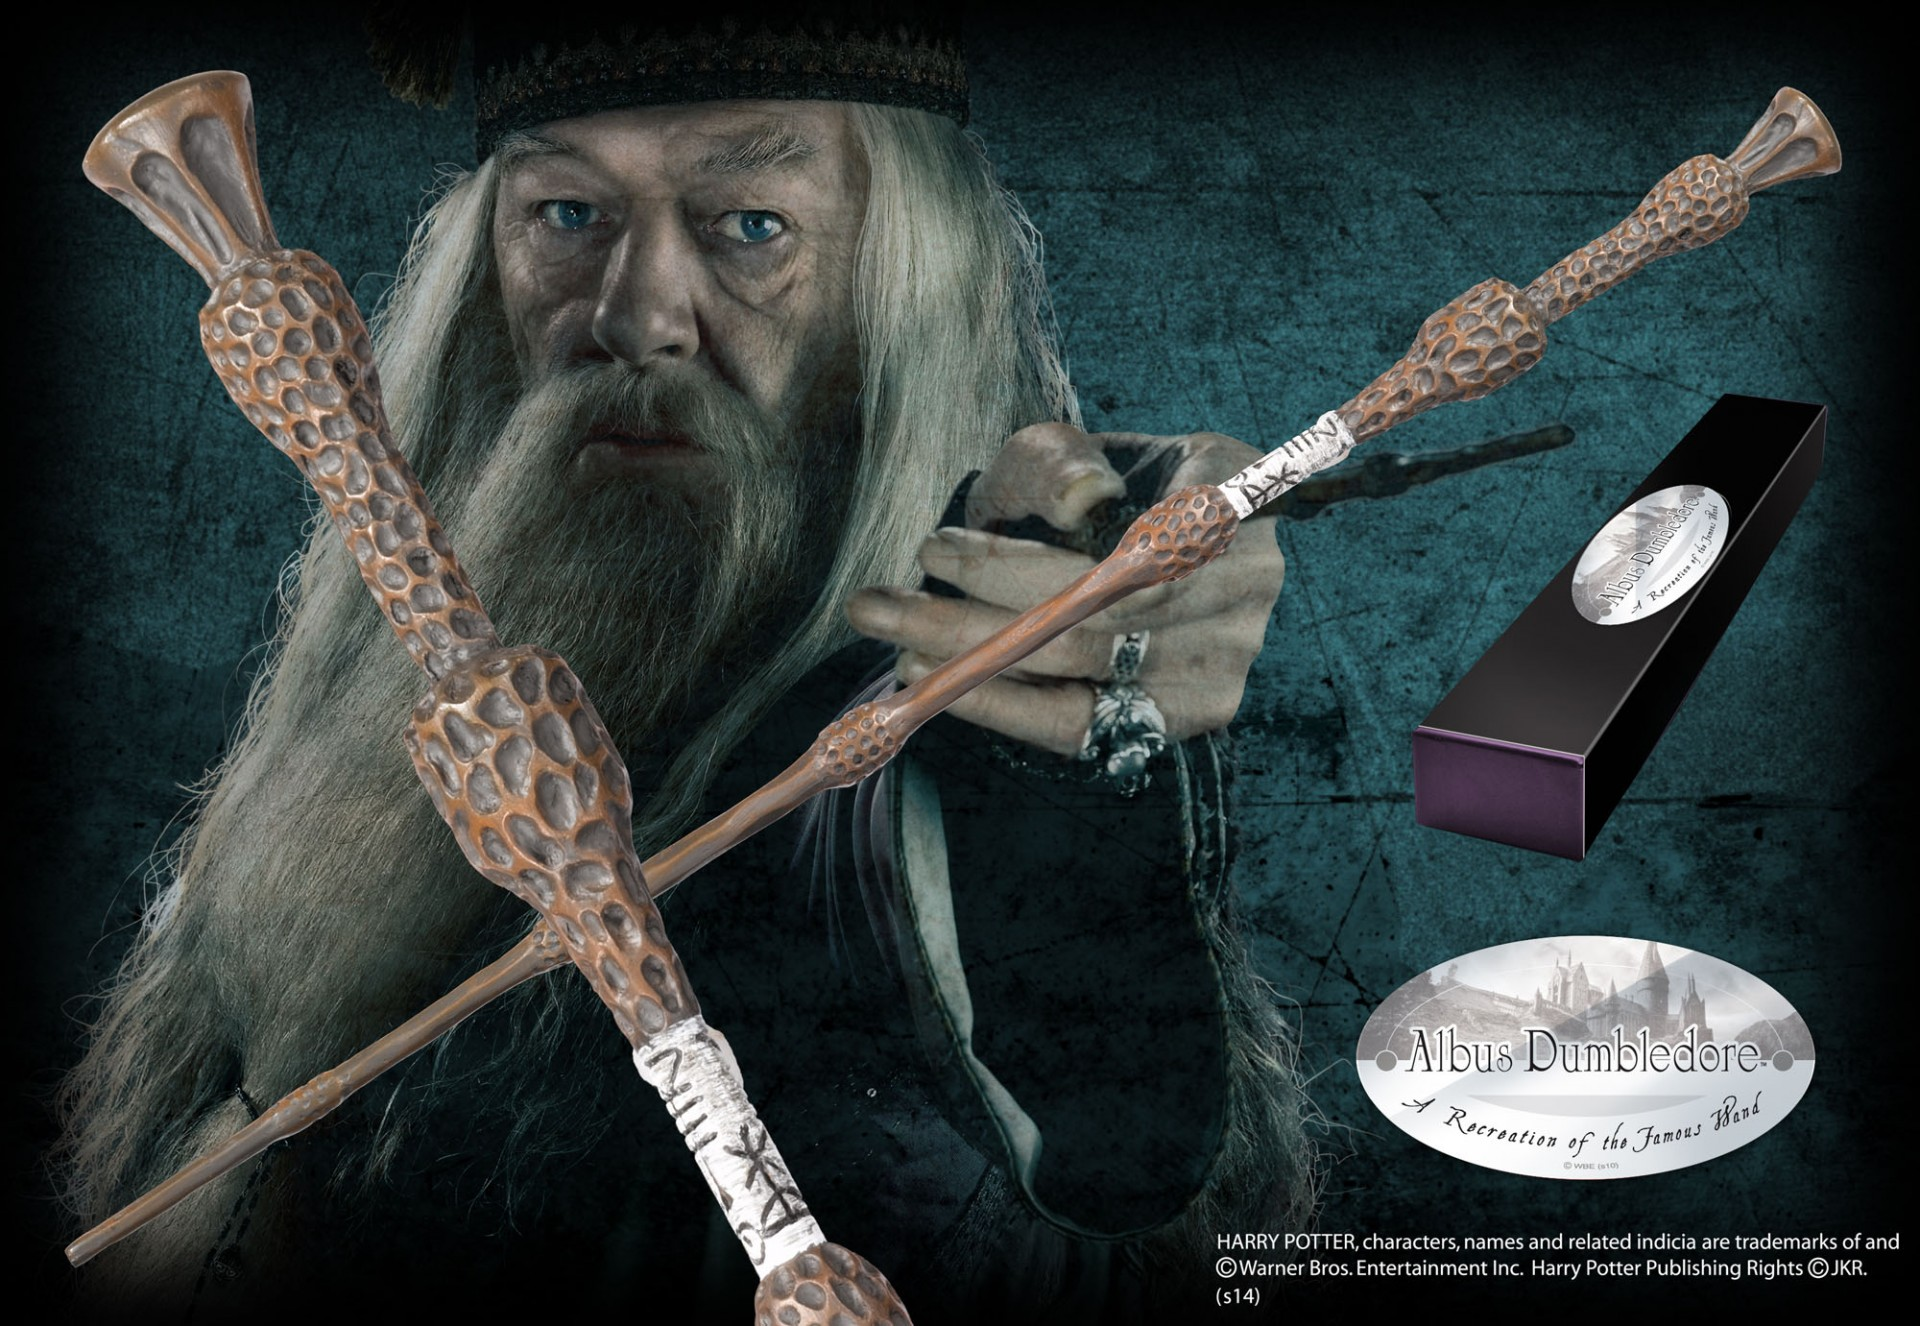 Albus Dumbledore Wand (Character Edition)